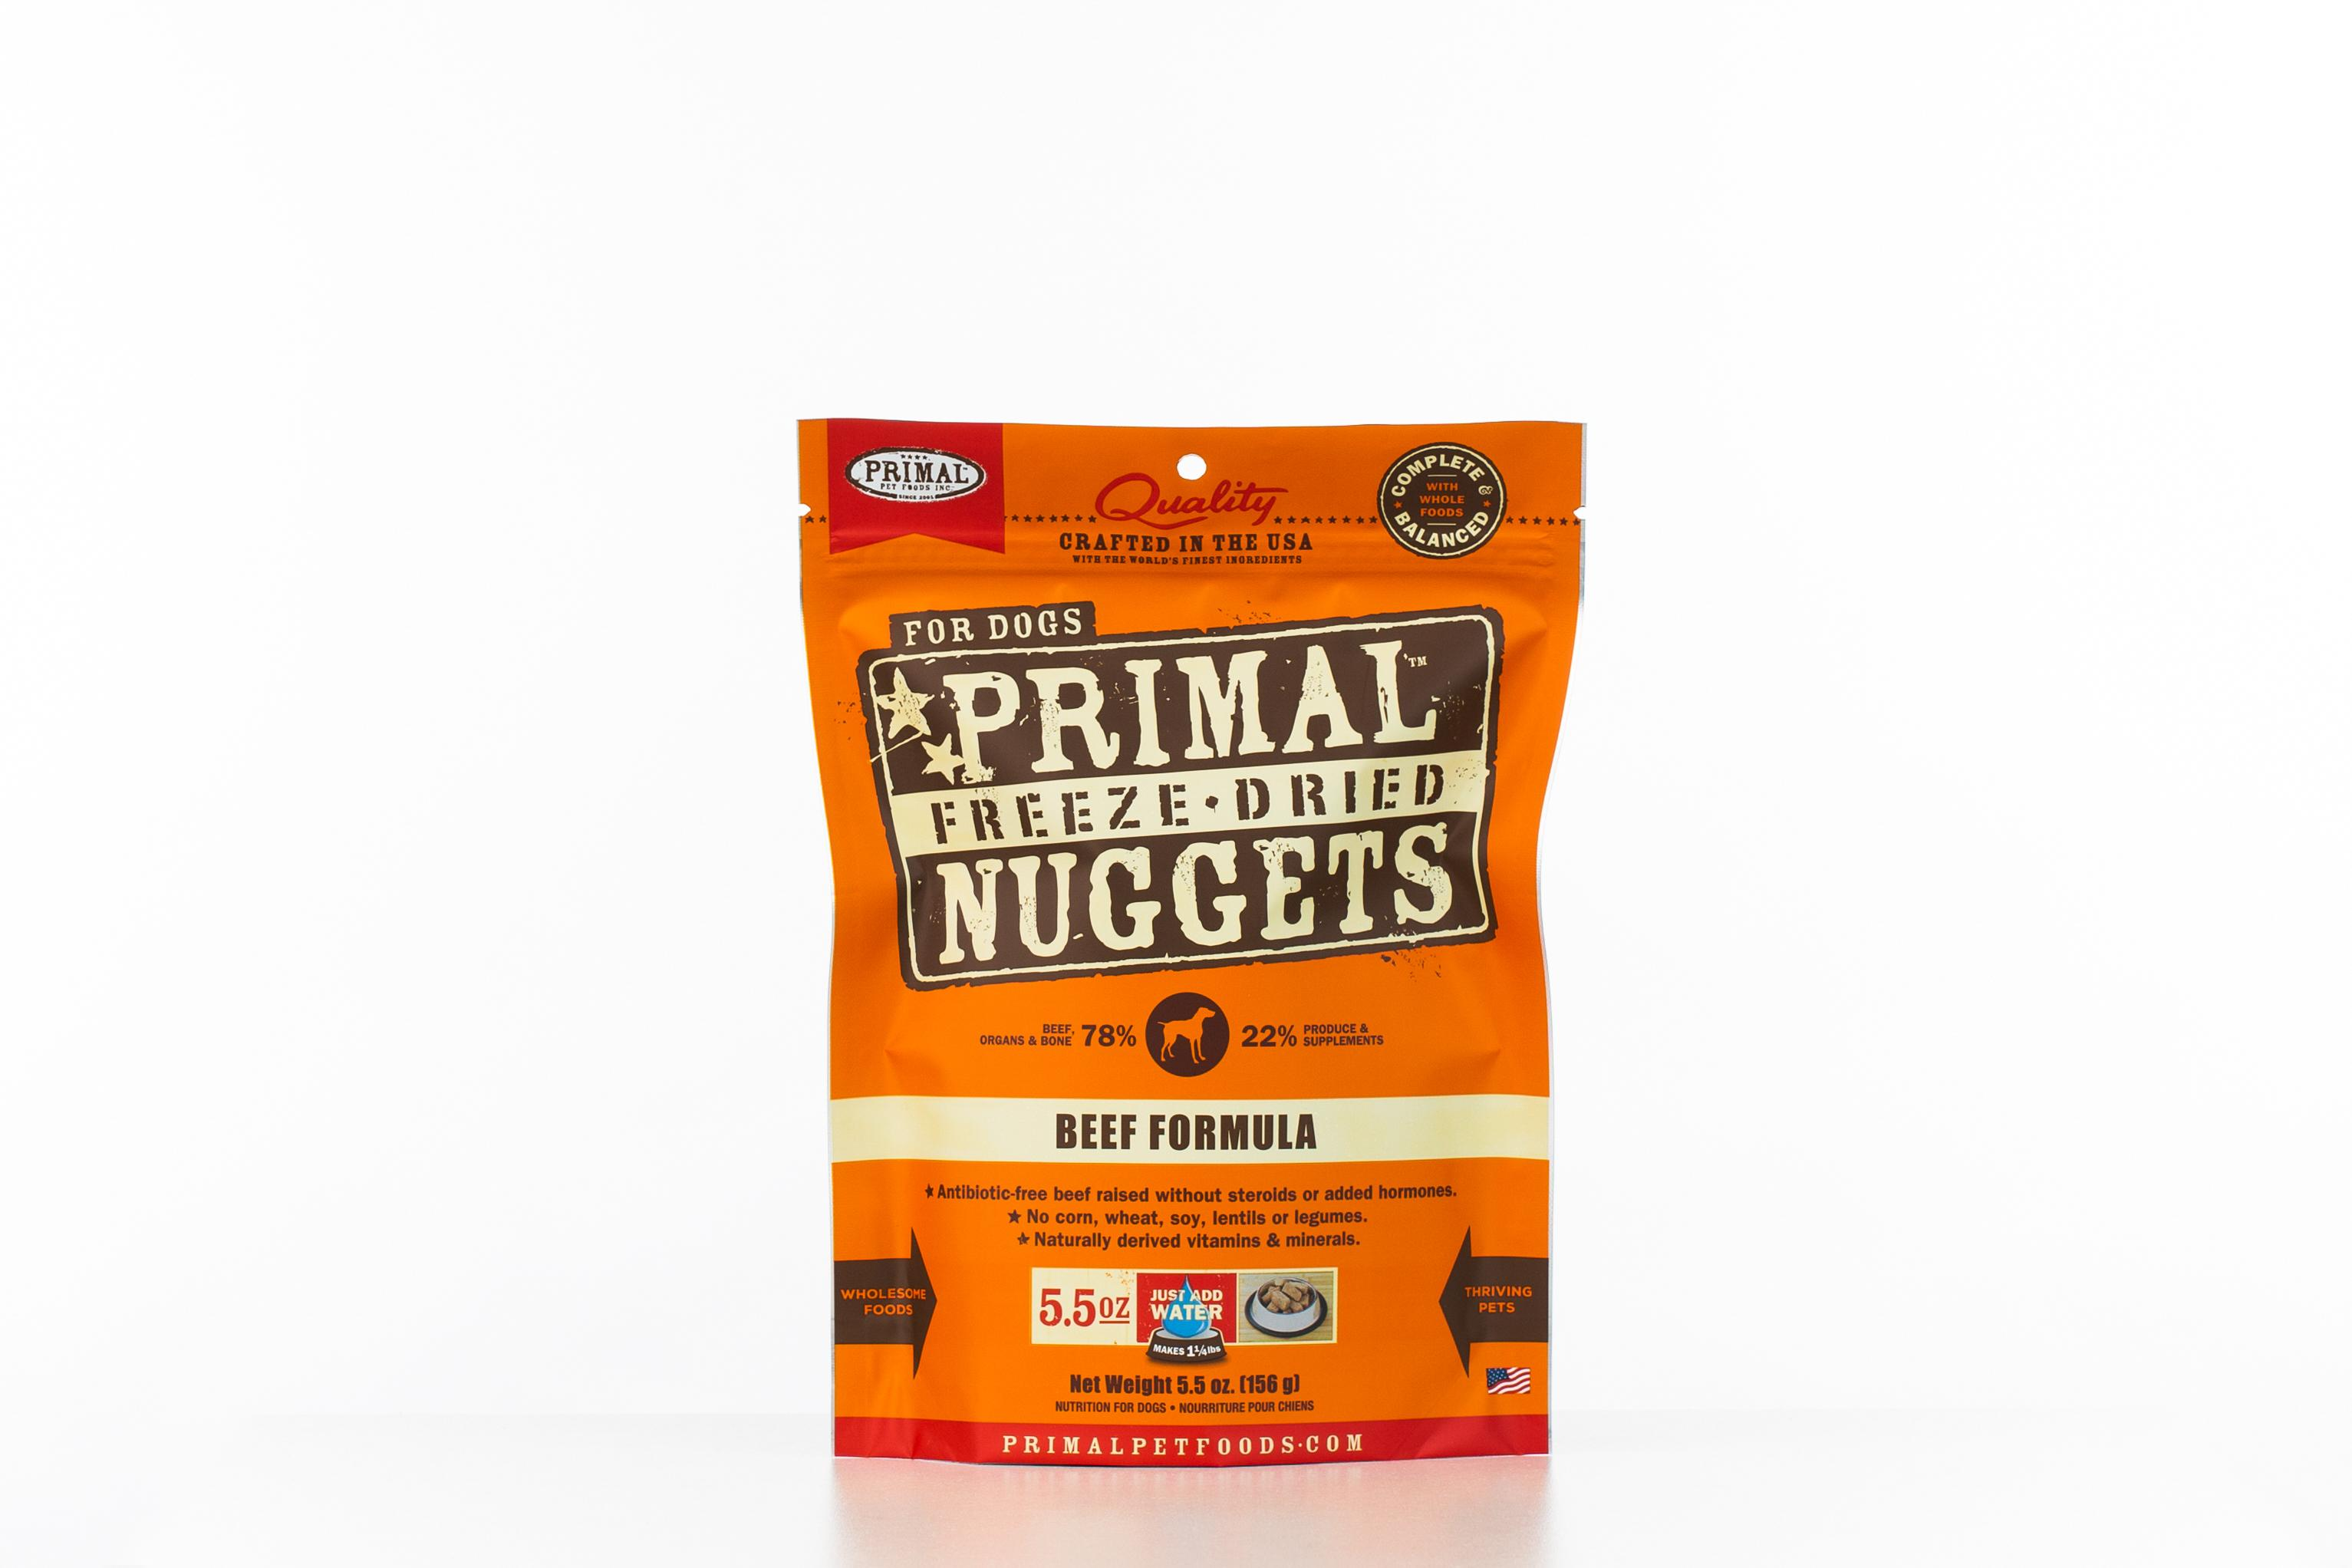 Primal Raw Freeze-Dried Nuggets Beef Formula Dog Food Image